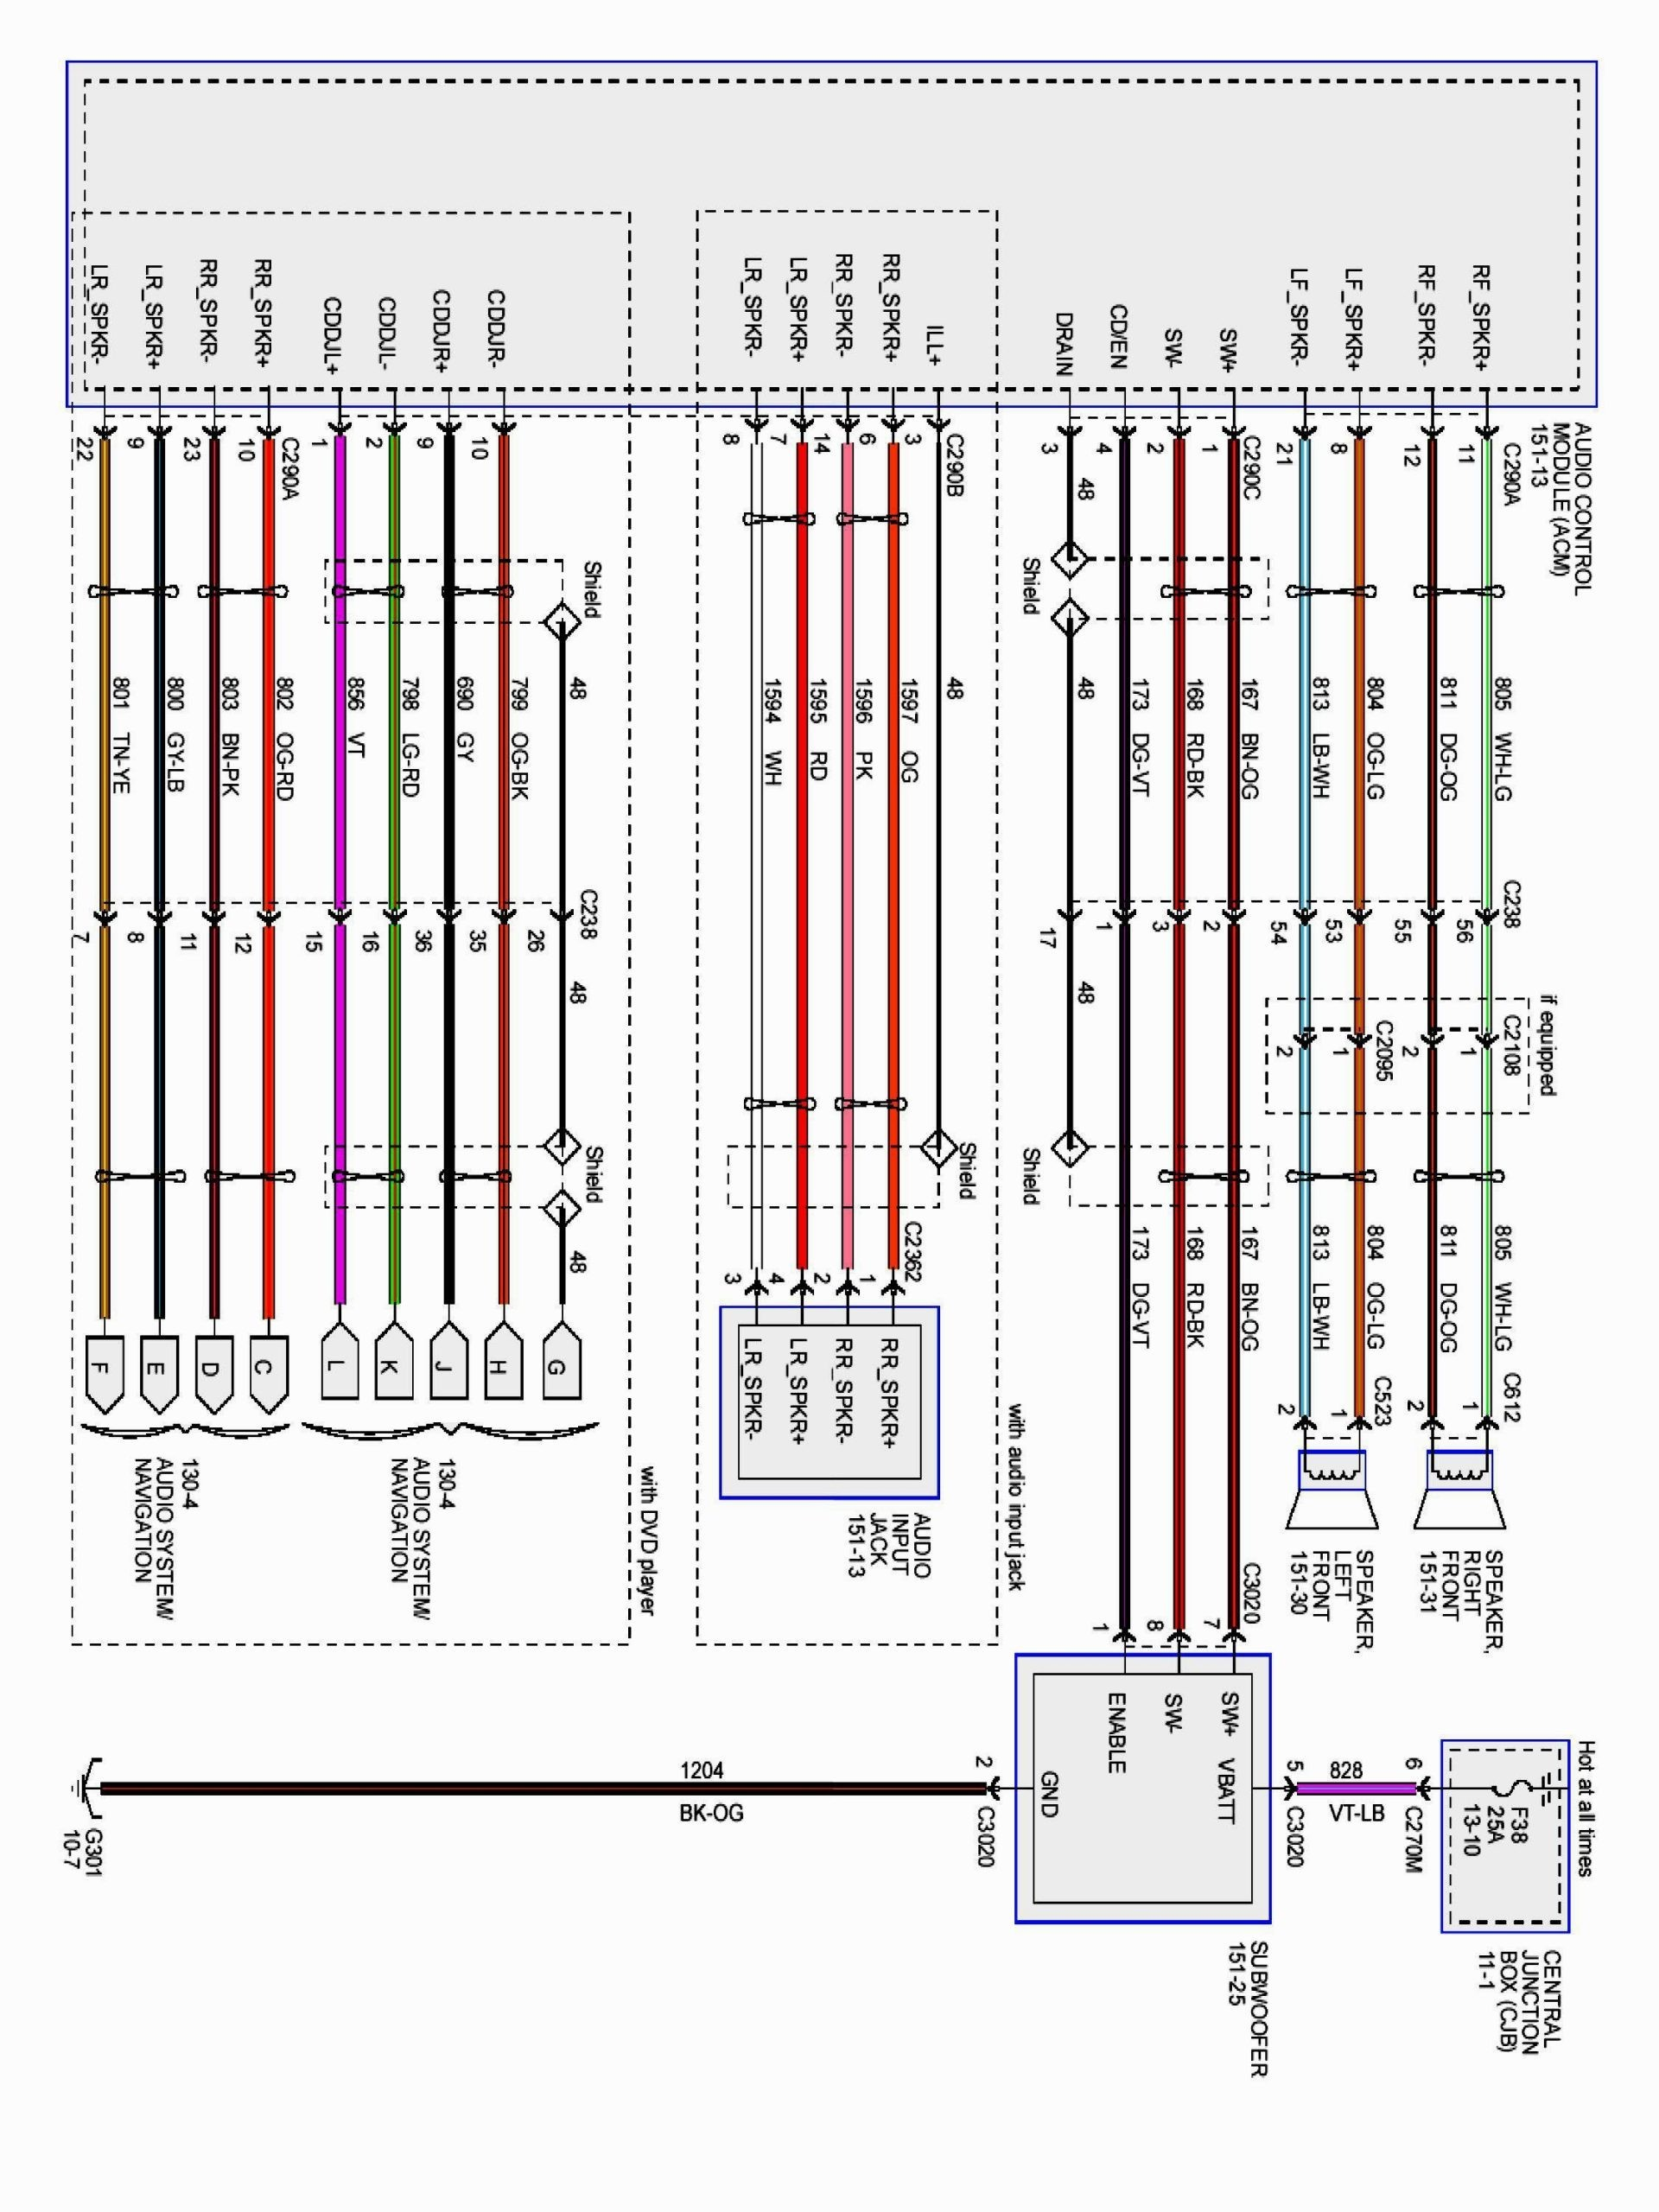 Clarion Xmd1 Wiring Diagram from mainetreasurechest.com